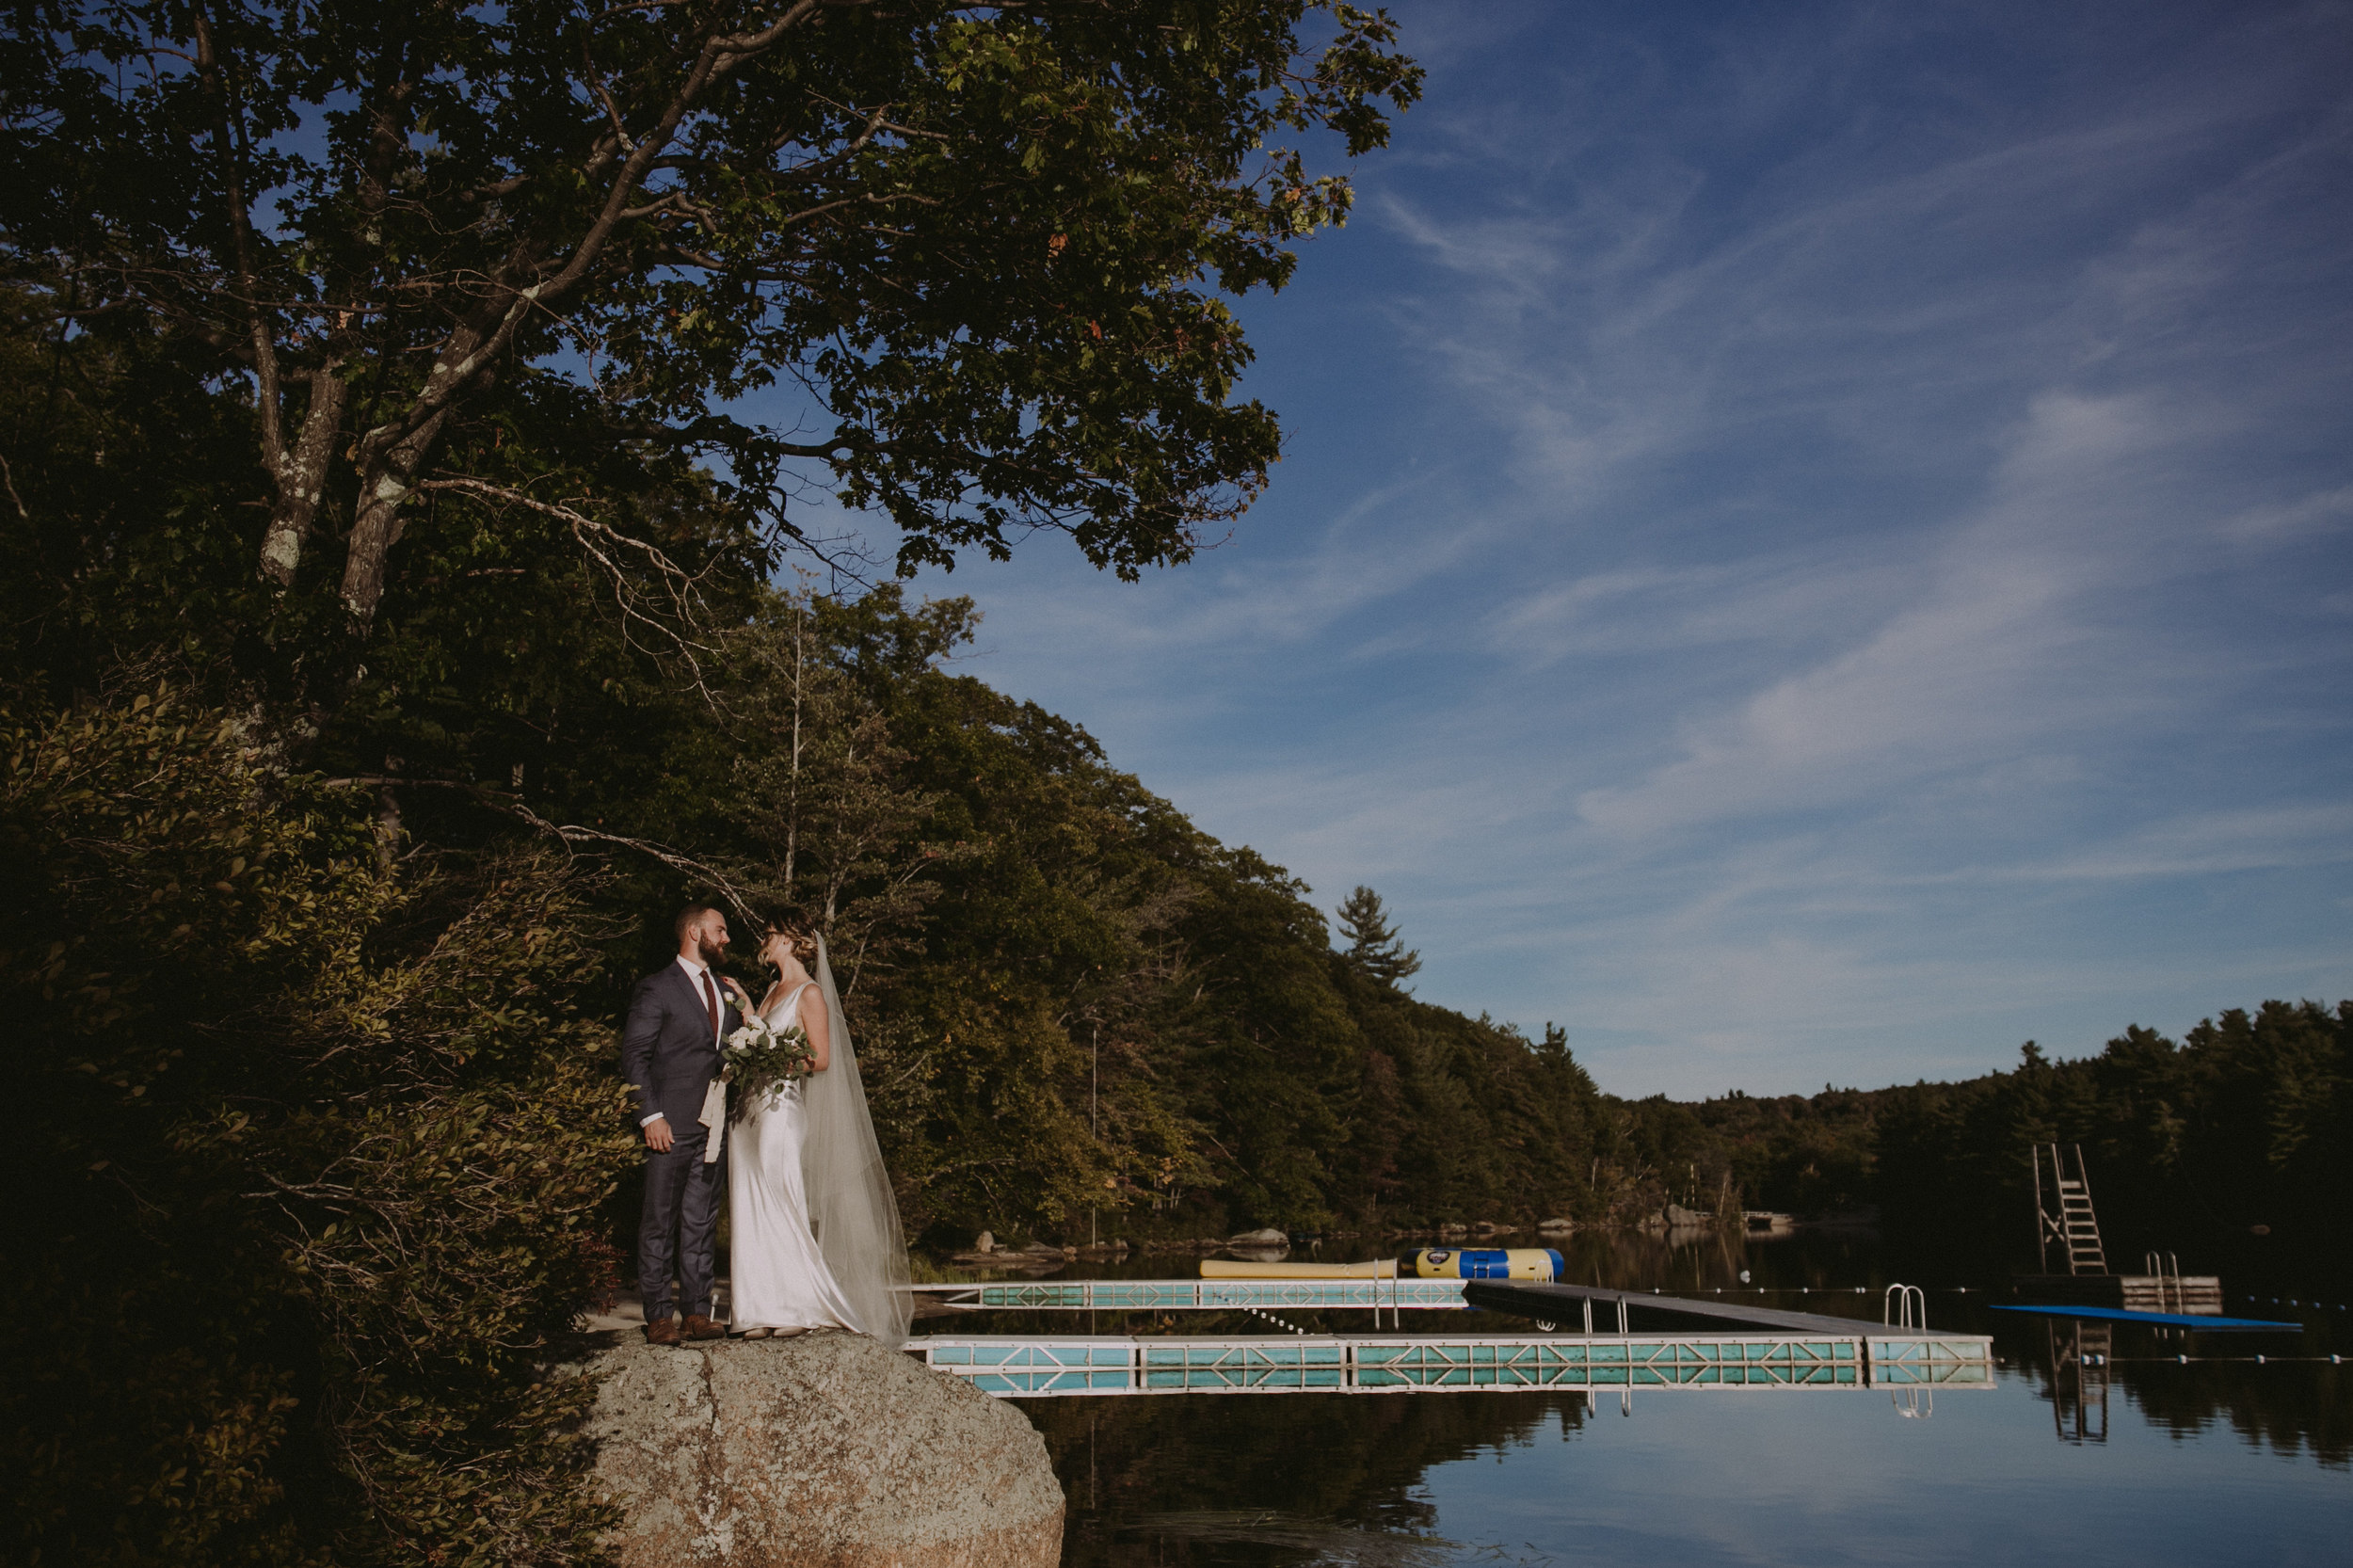 windsor mountain summer camp wedding NH chellise michael photography 1789.jpg